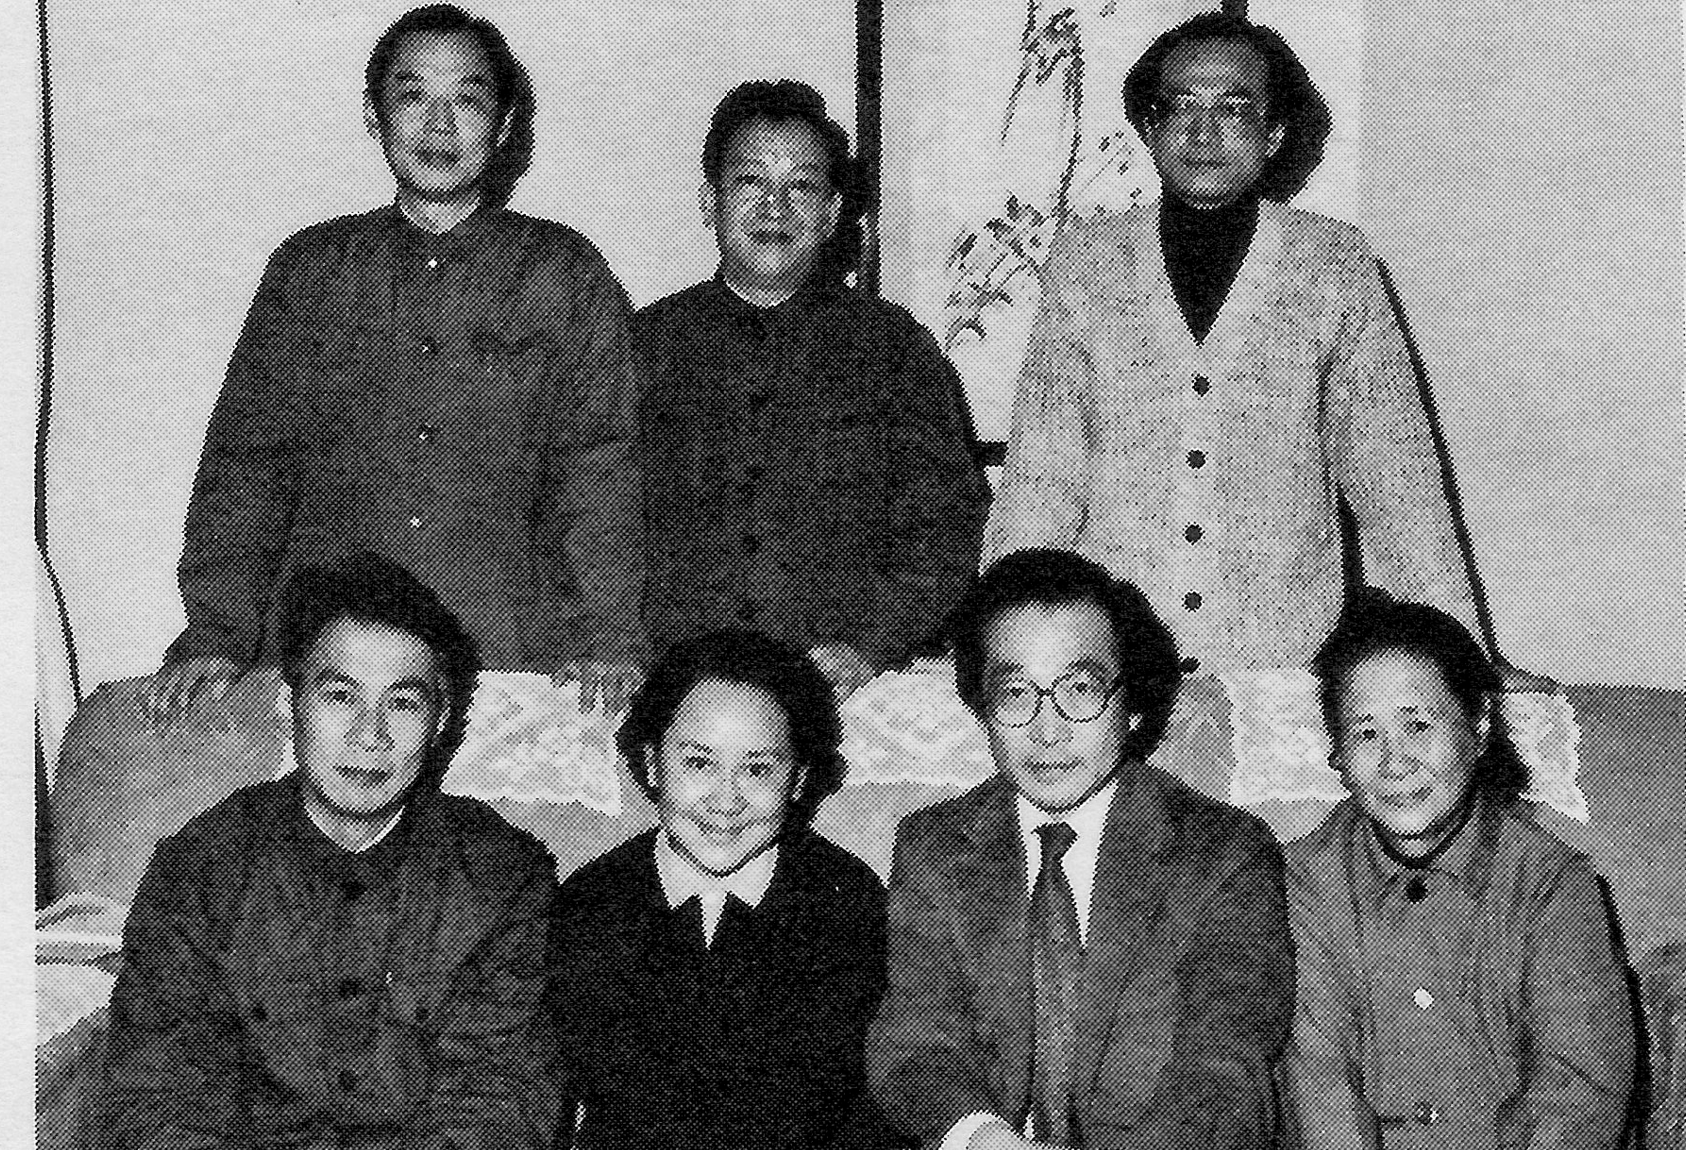 The gathering of representatives from Shanghai's dance organizations included (seated left to right): Xiao Yan, director of the Shanghai Music and Dance Troupe; Li Mulin, Shanghai Institute of Dance; Chou Wen-chung; and Hu Rongrong of the Shanghai Ballet Company. Standing from left to right are Zhu Jidao and Zhao Jingan of the Shanghai Arts Bureau and Chen Xiyang, conductor of the Shanghai Ballet Company.